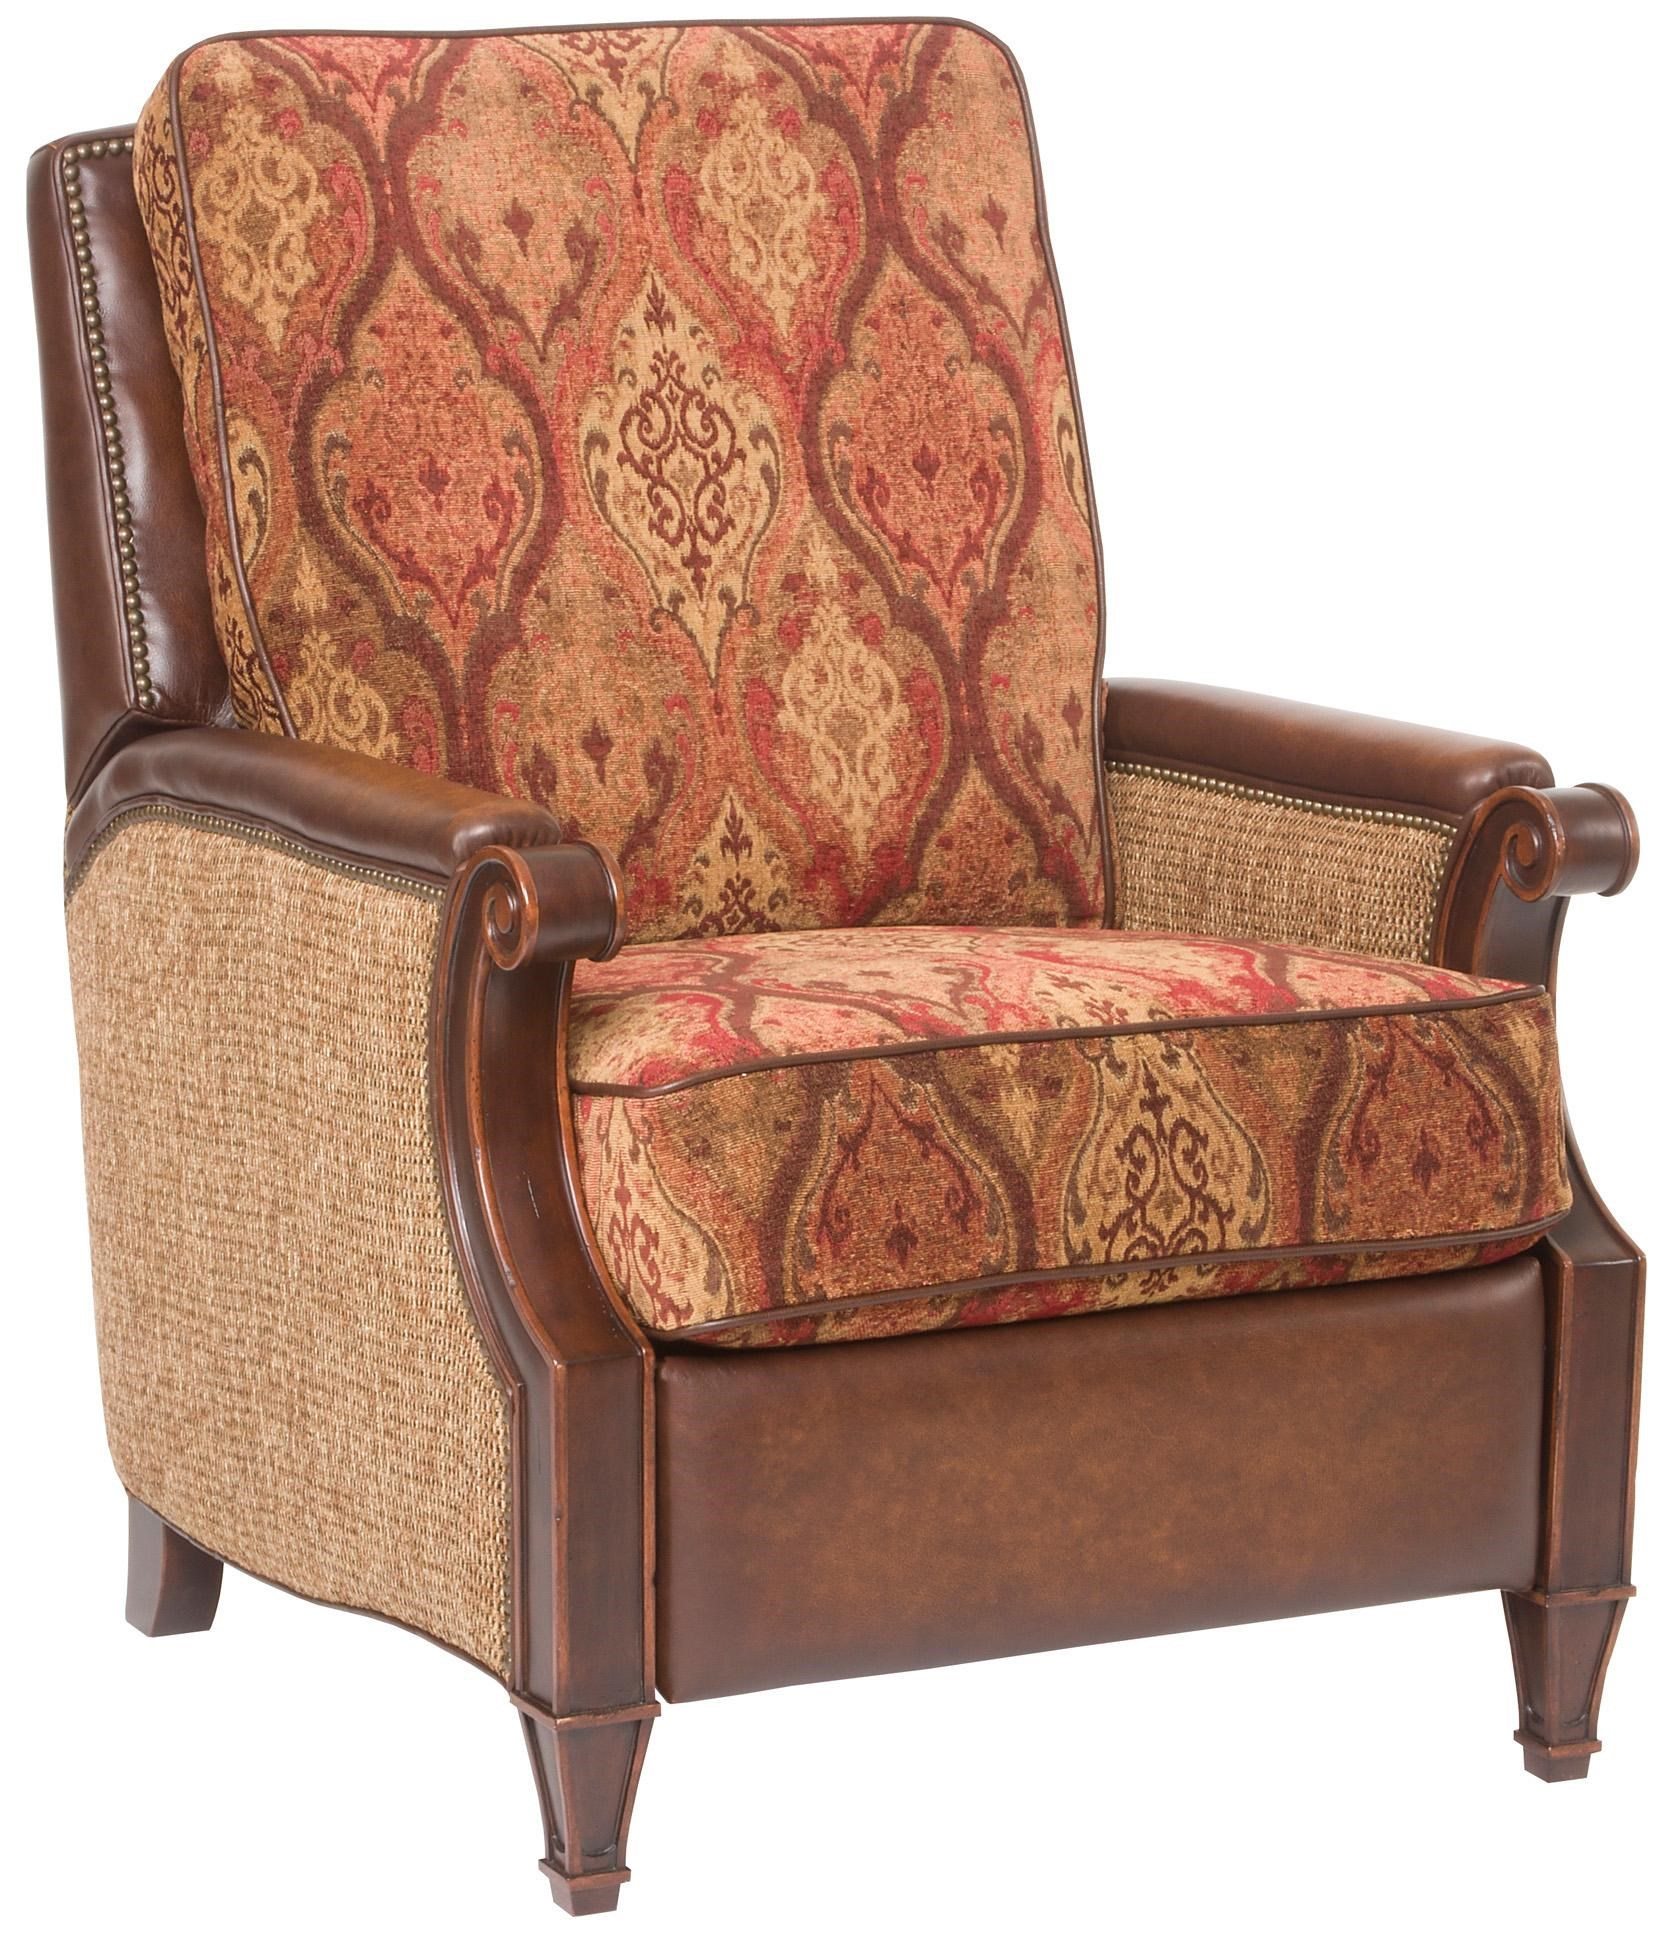 Hooker Furniture Seven Seas Seating - Reclining Chairs Recliner Chair with Accent Upholstered Seat and Backrest Leather Trim and Brass Nail Heads - Dunk ...  sc 1 st  Dunk u0026 Bright Furniture & Hooker Furniture Seven Seas Seating - Reclining Chairs Recliner ... islam-shia.org